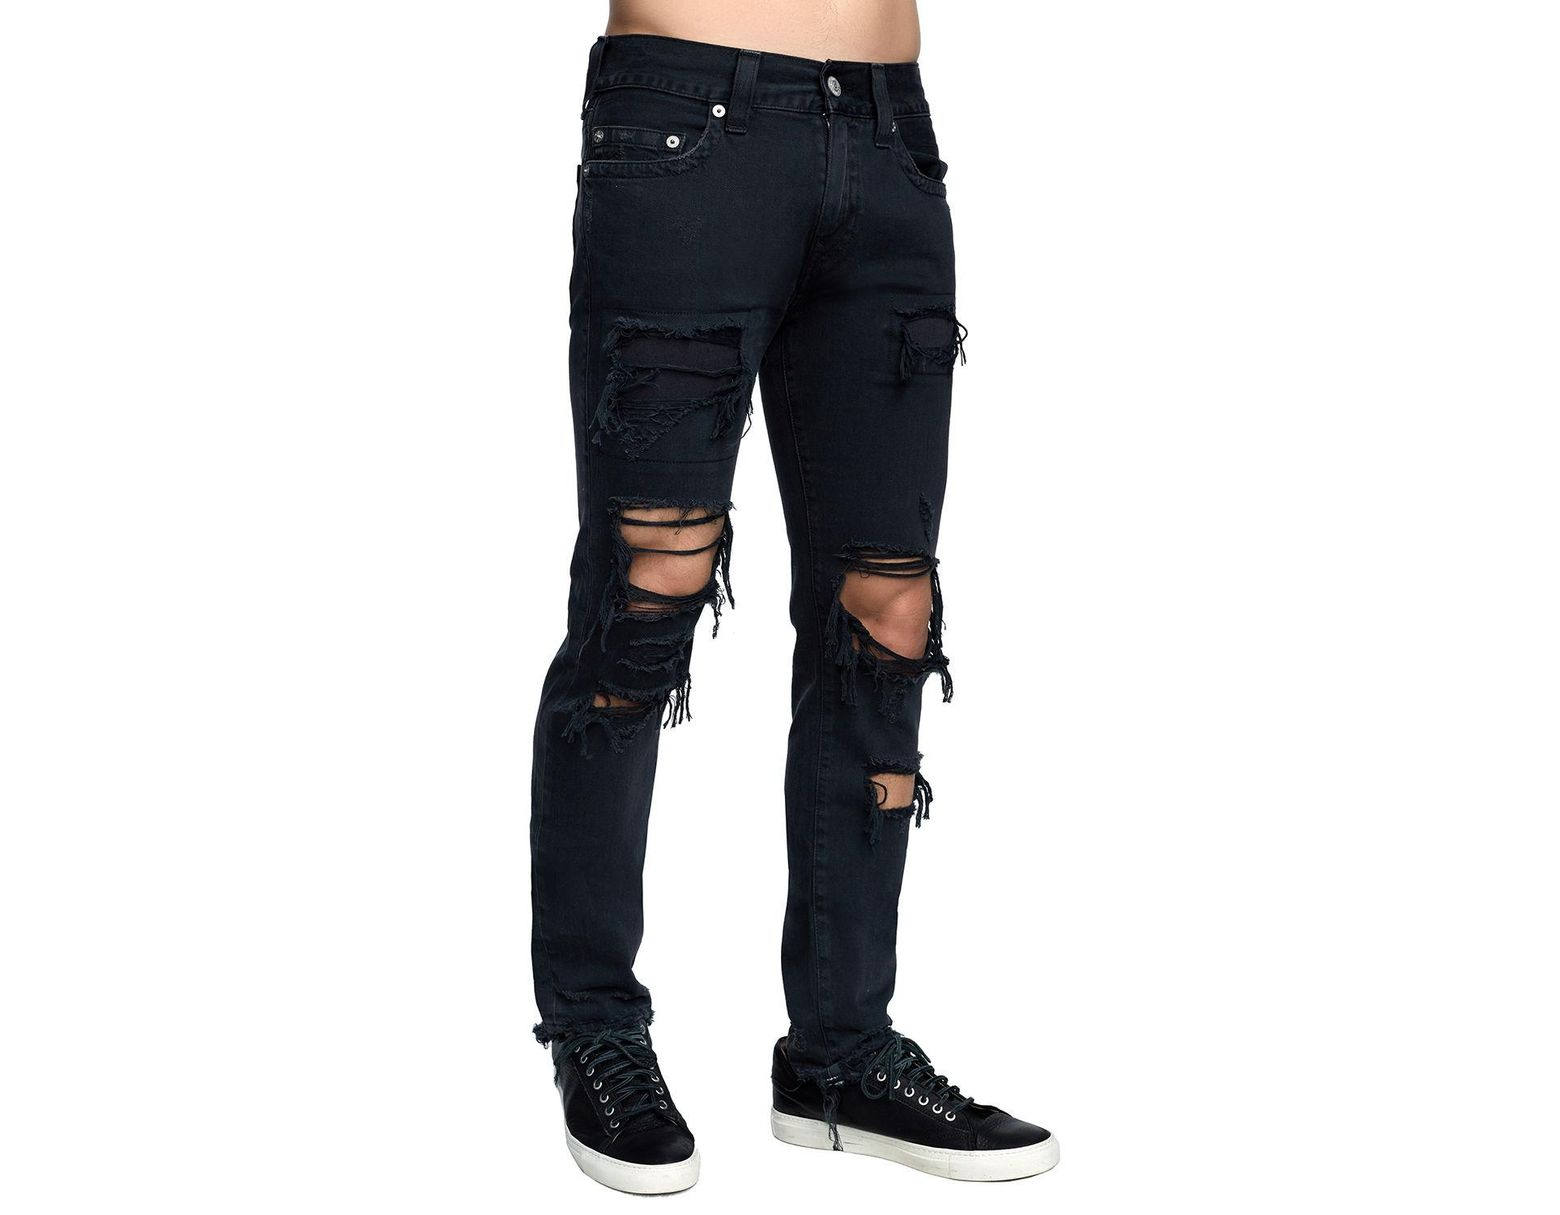 83cbc0814d2 True Religion Men s Rocco Skinny Destroyed Denim Jeans in Blue for Men -  Save 57% - Lyst